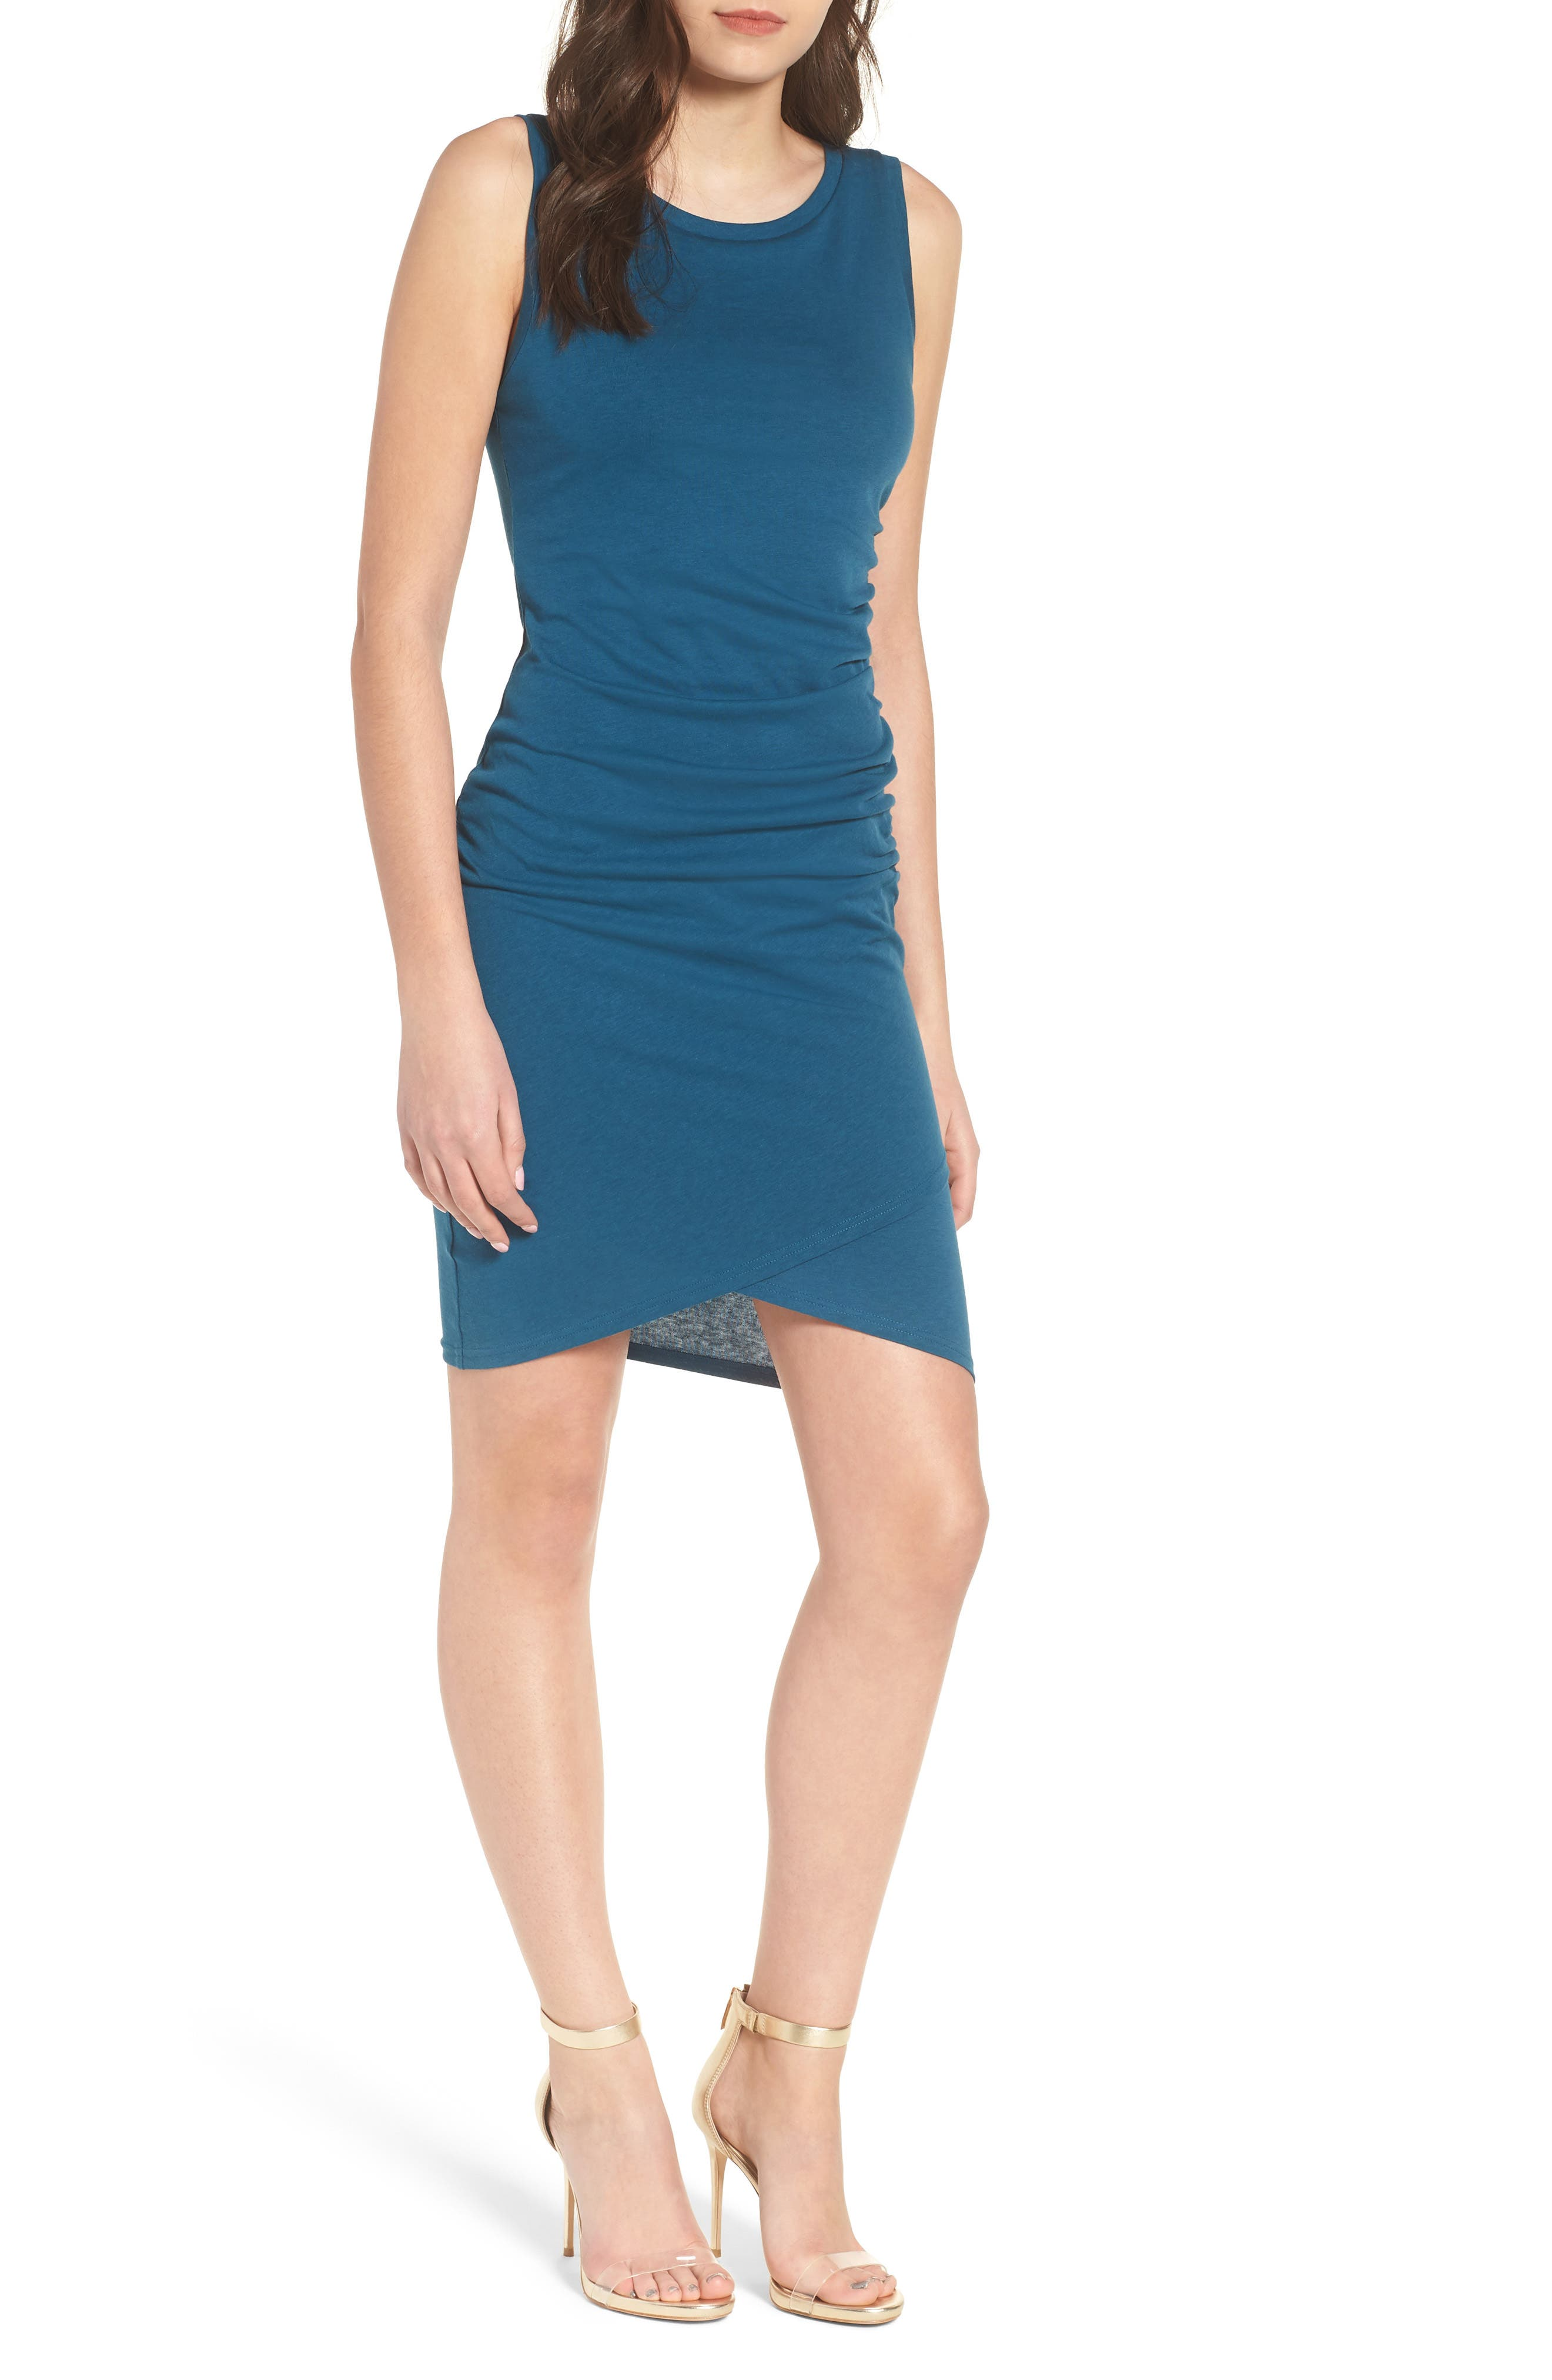 Ruched Body-Con Tank Dress,                             Main thumbnail 1, color,                             Teal Seagate